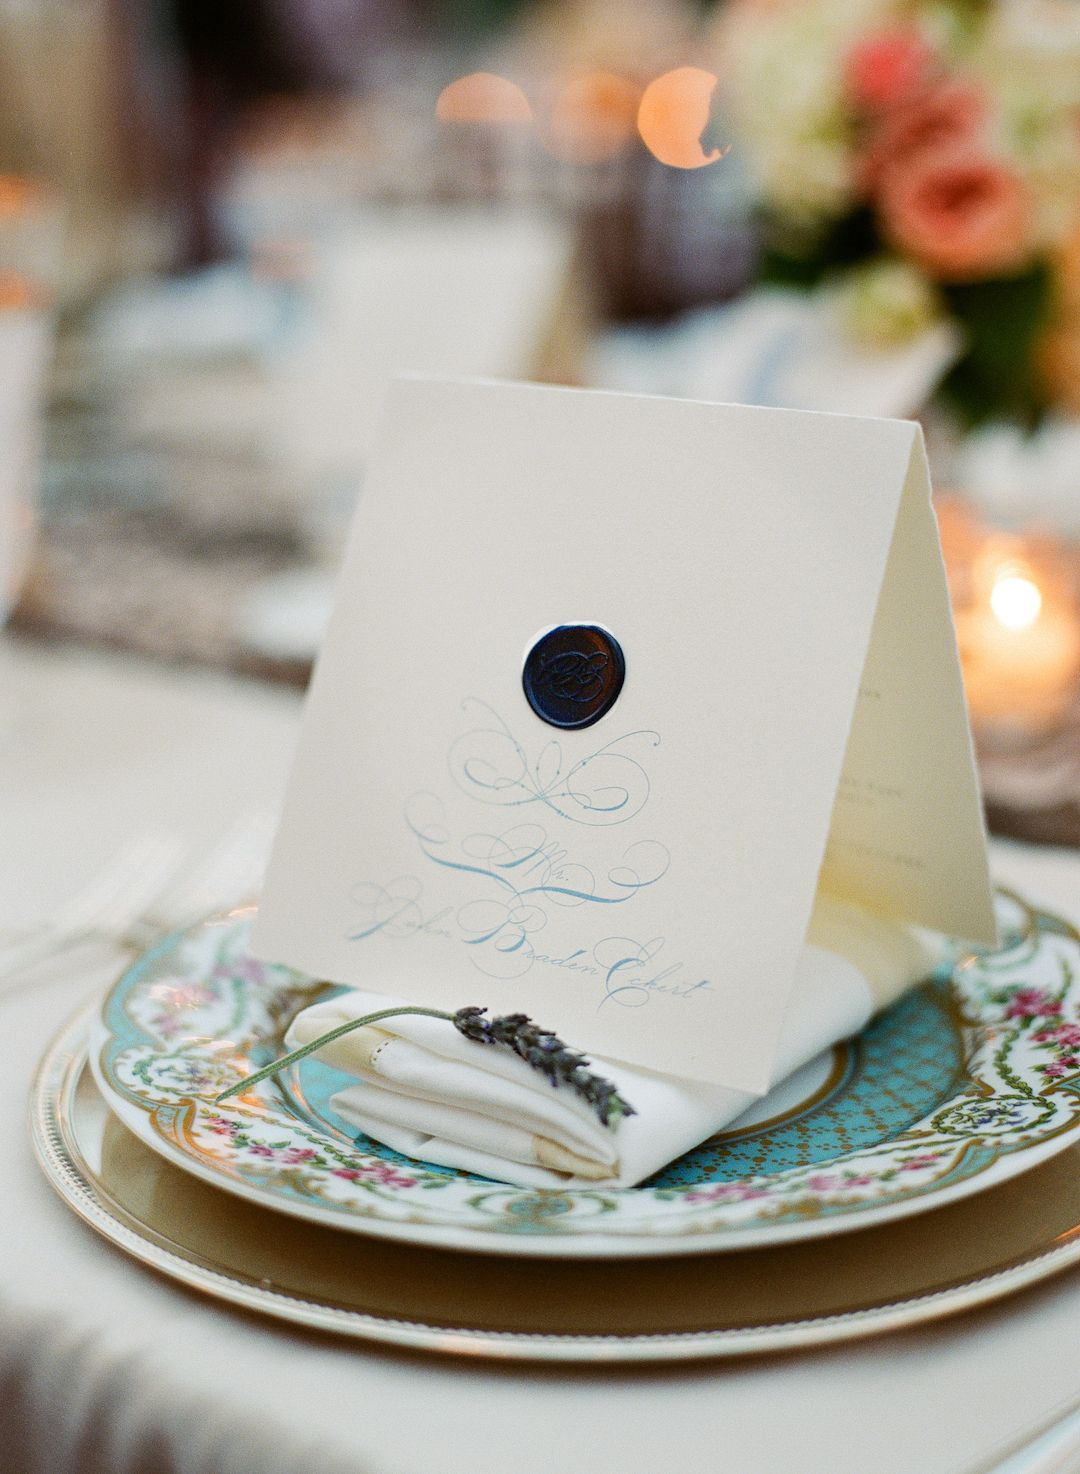 Vintage place setting, menu card with blue calligraphy and dark blue monogram wax seal. Paper goods by Tucked, image by Jen Fariello.